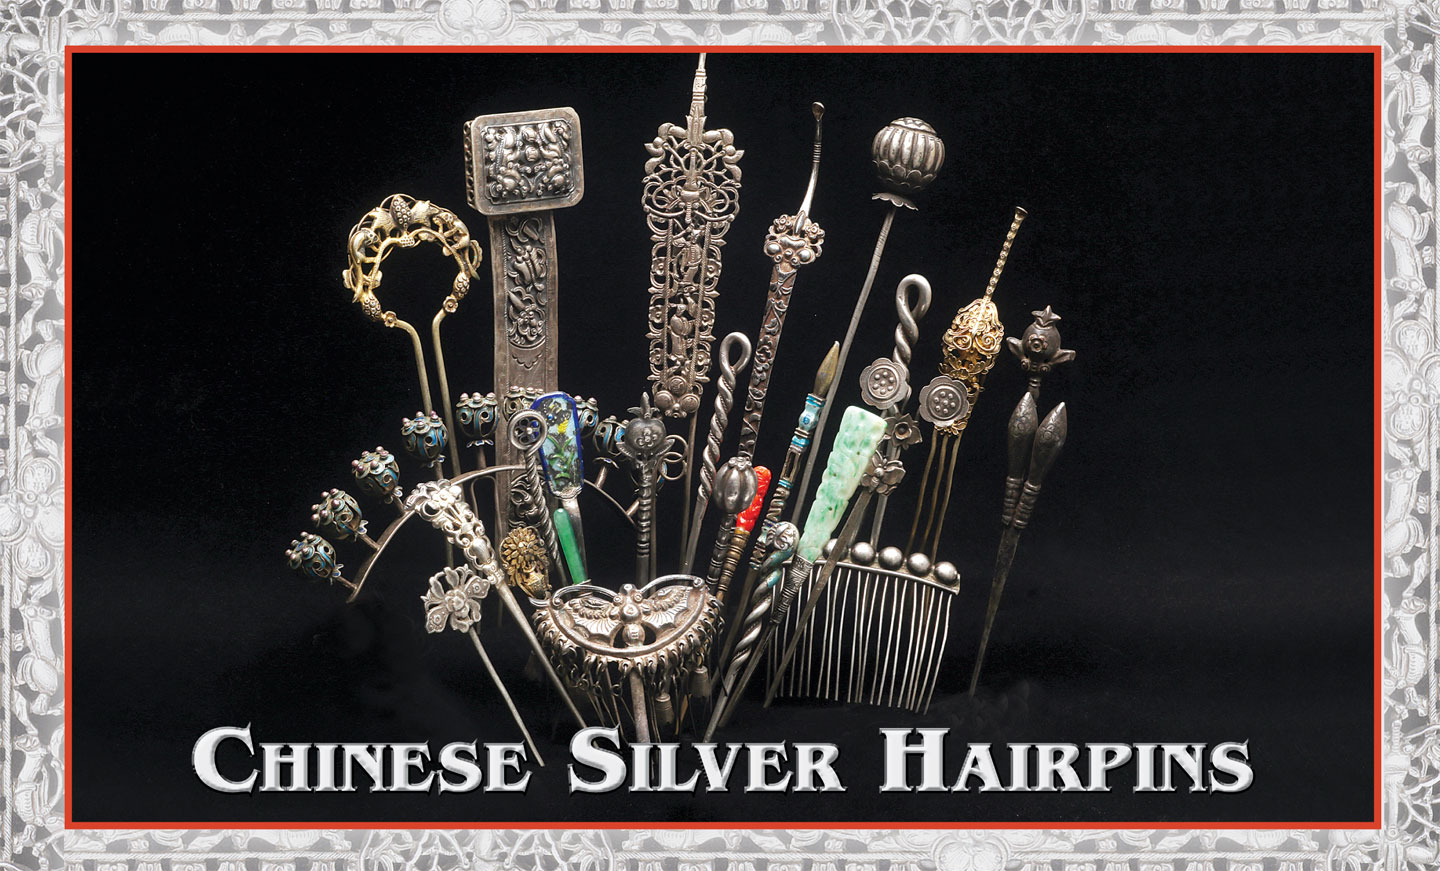 CHINESE SILVER HAIRPINS, an excellent representative sample of the numerous styles, from single to multi-tine examples. A number are decorated by enameling, gilding or set with glass simulations of jade and coral. These are fabricated, cast or die-struck, some with multiple techniques. Sizes range from 8.5 to 21.2 centimeters (cm) long, and 0.6 to 13.4 centimeters wide.  Courtesy of Leekan Designs. Photographs by Robert K. Liu/ Ornament .